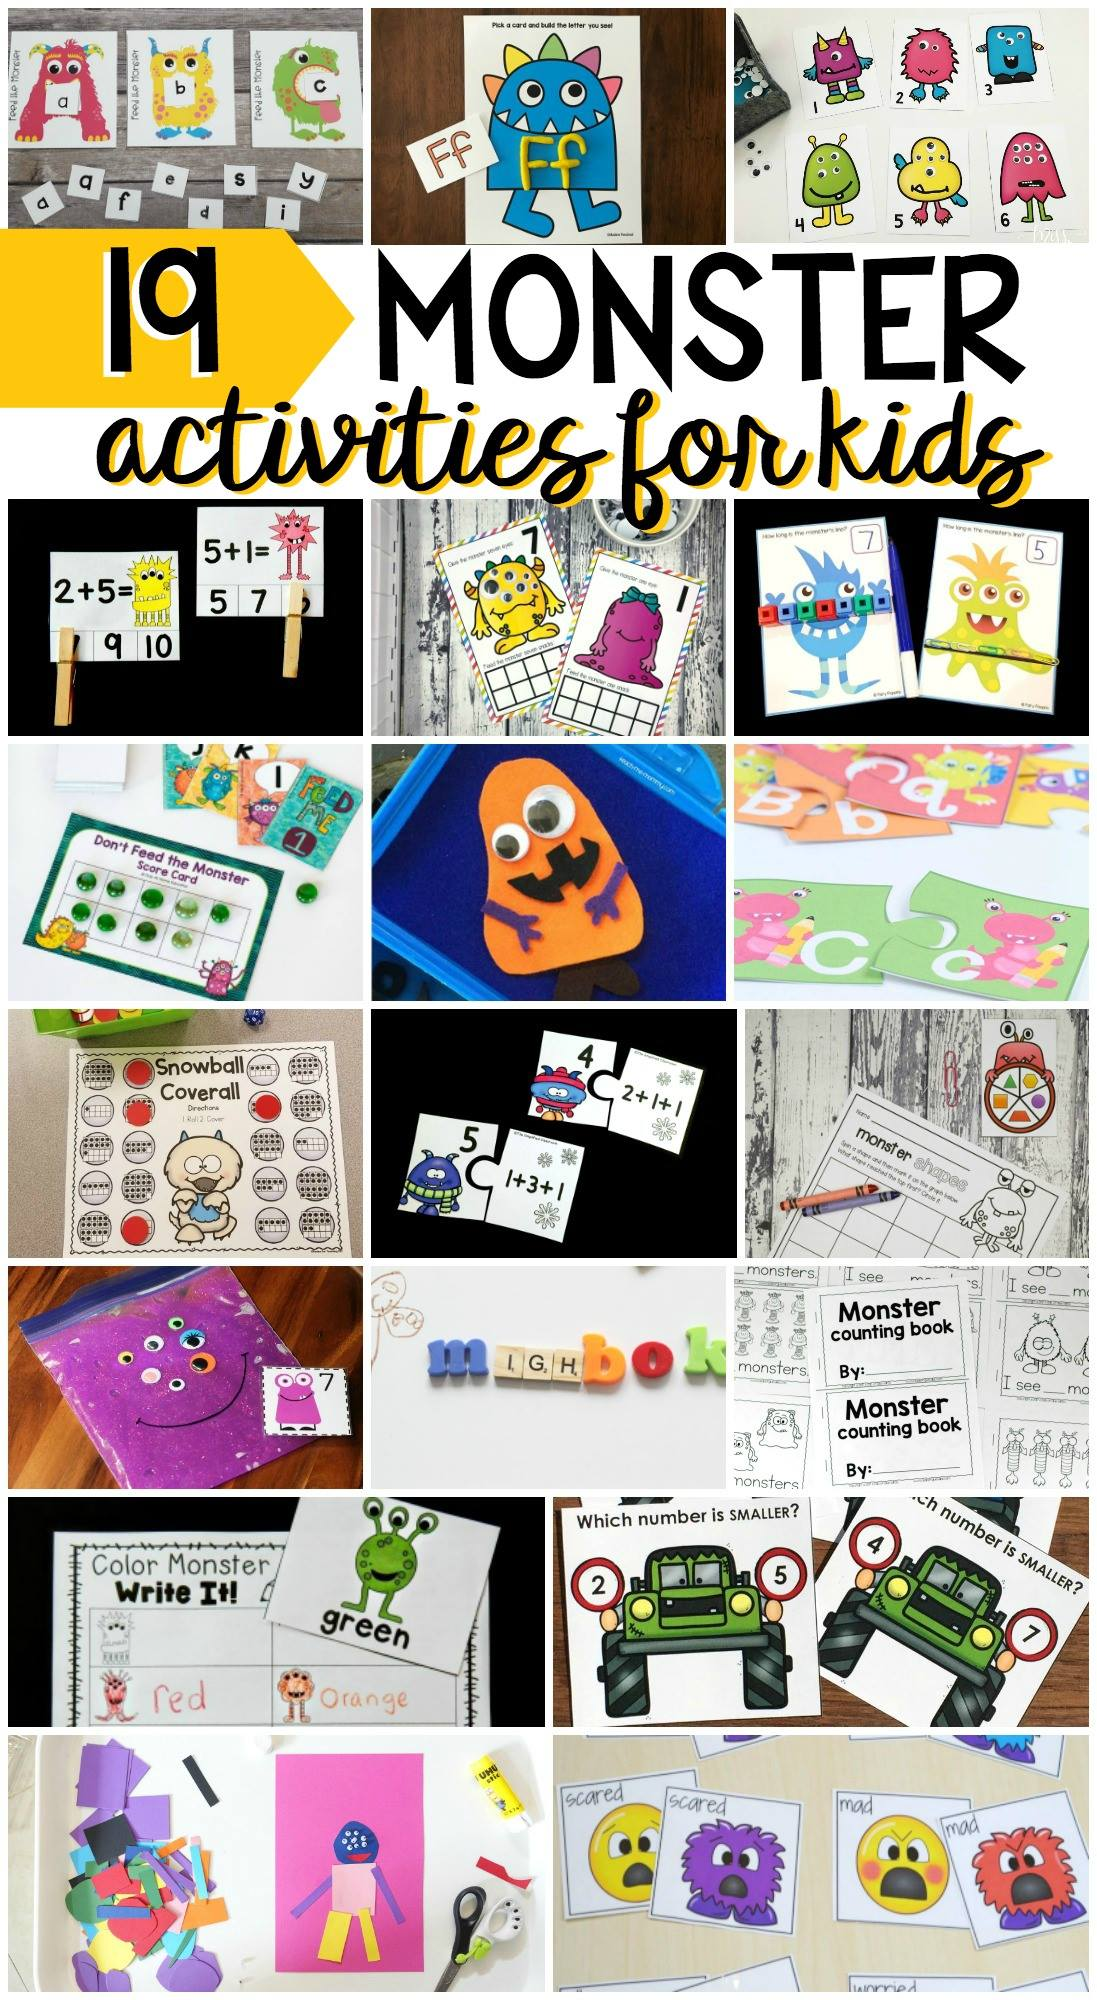 Such fun monster learning activities for kids!